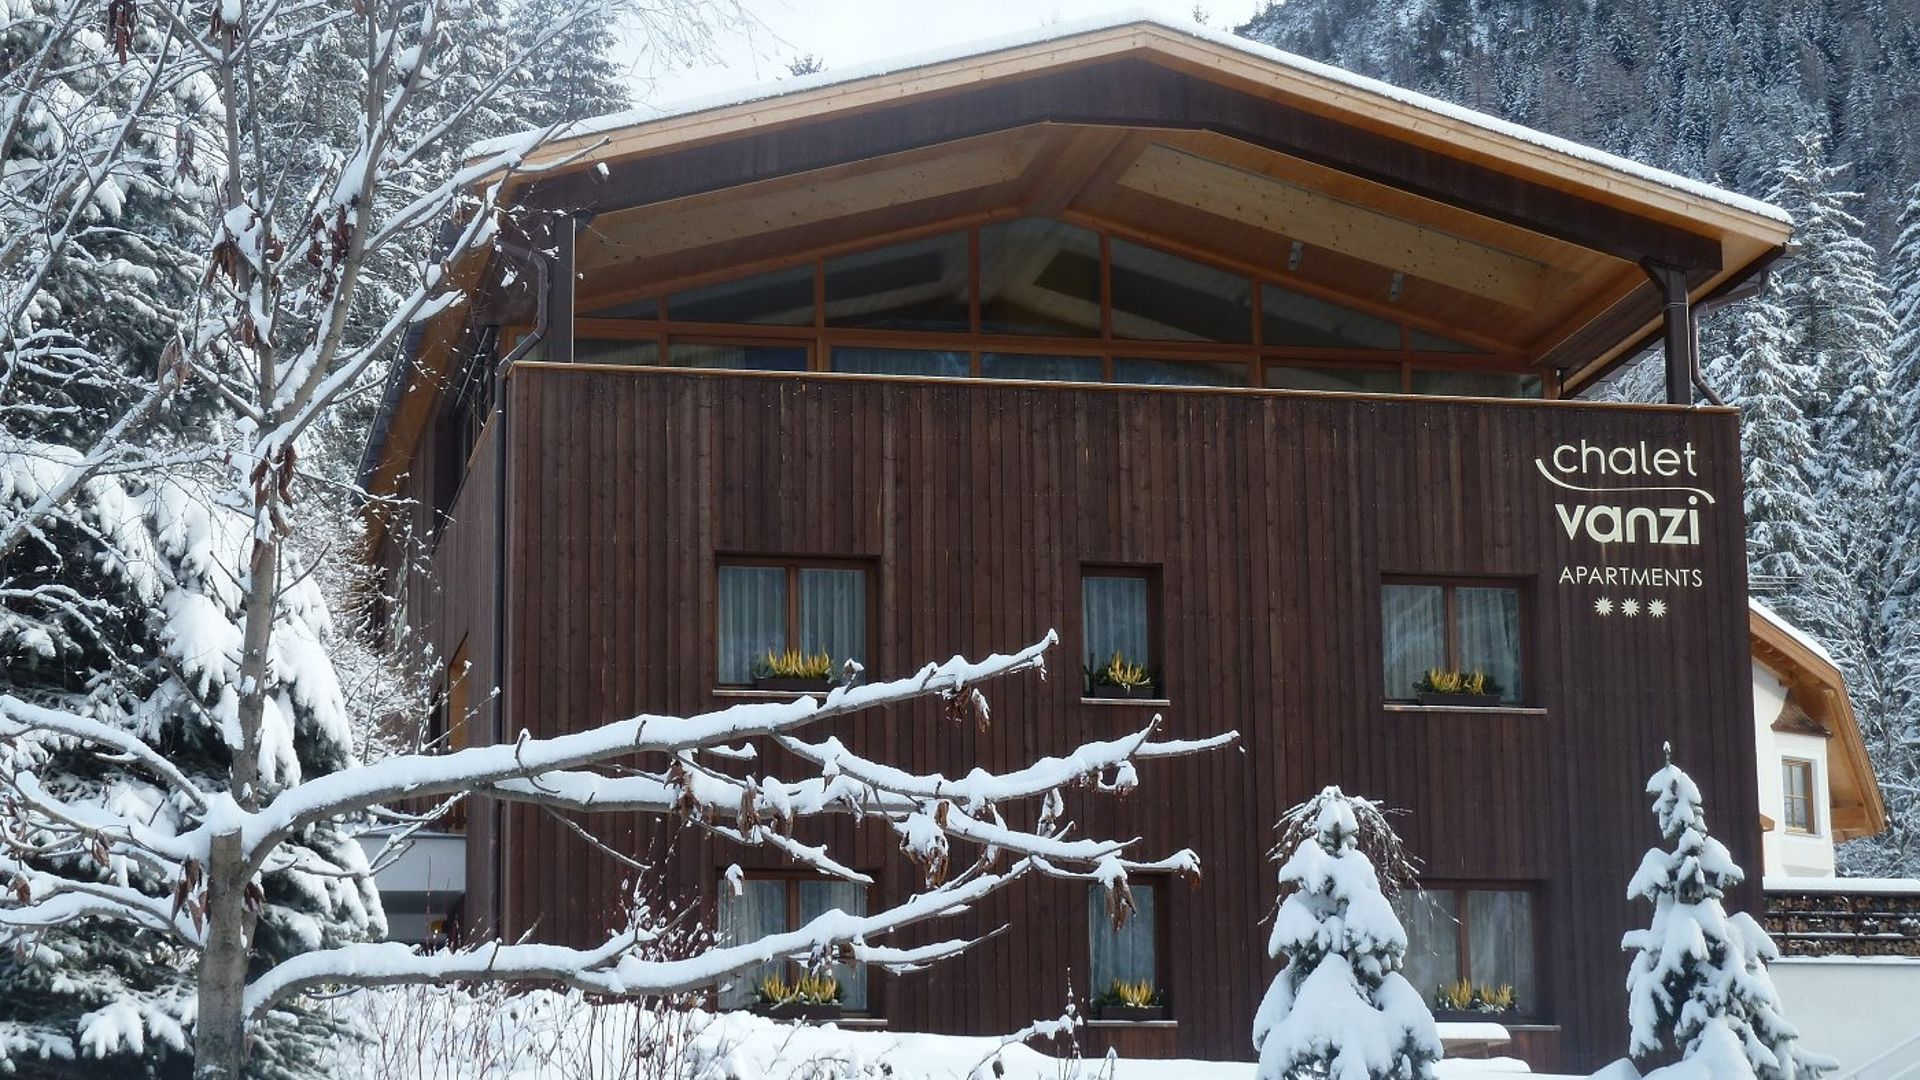 Bild: : Vanzi Chalet Apartments in Pikolein, St. Martin in Thurn